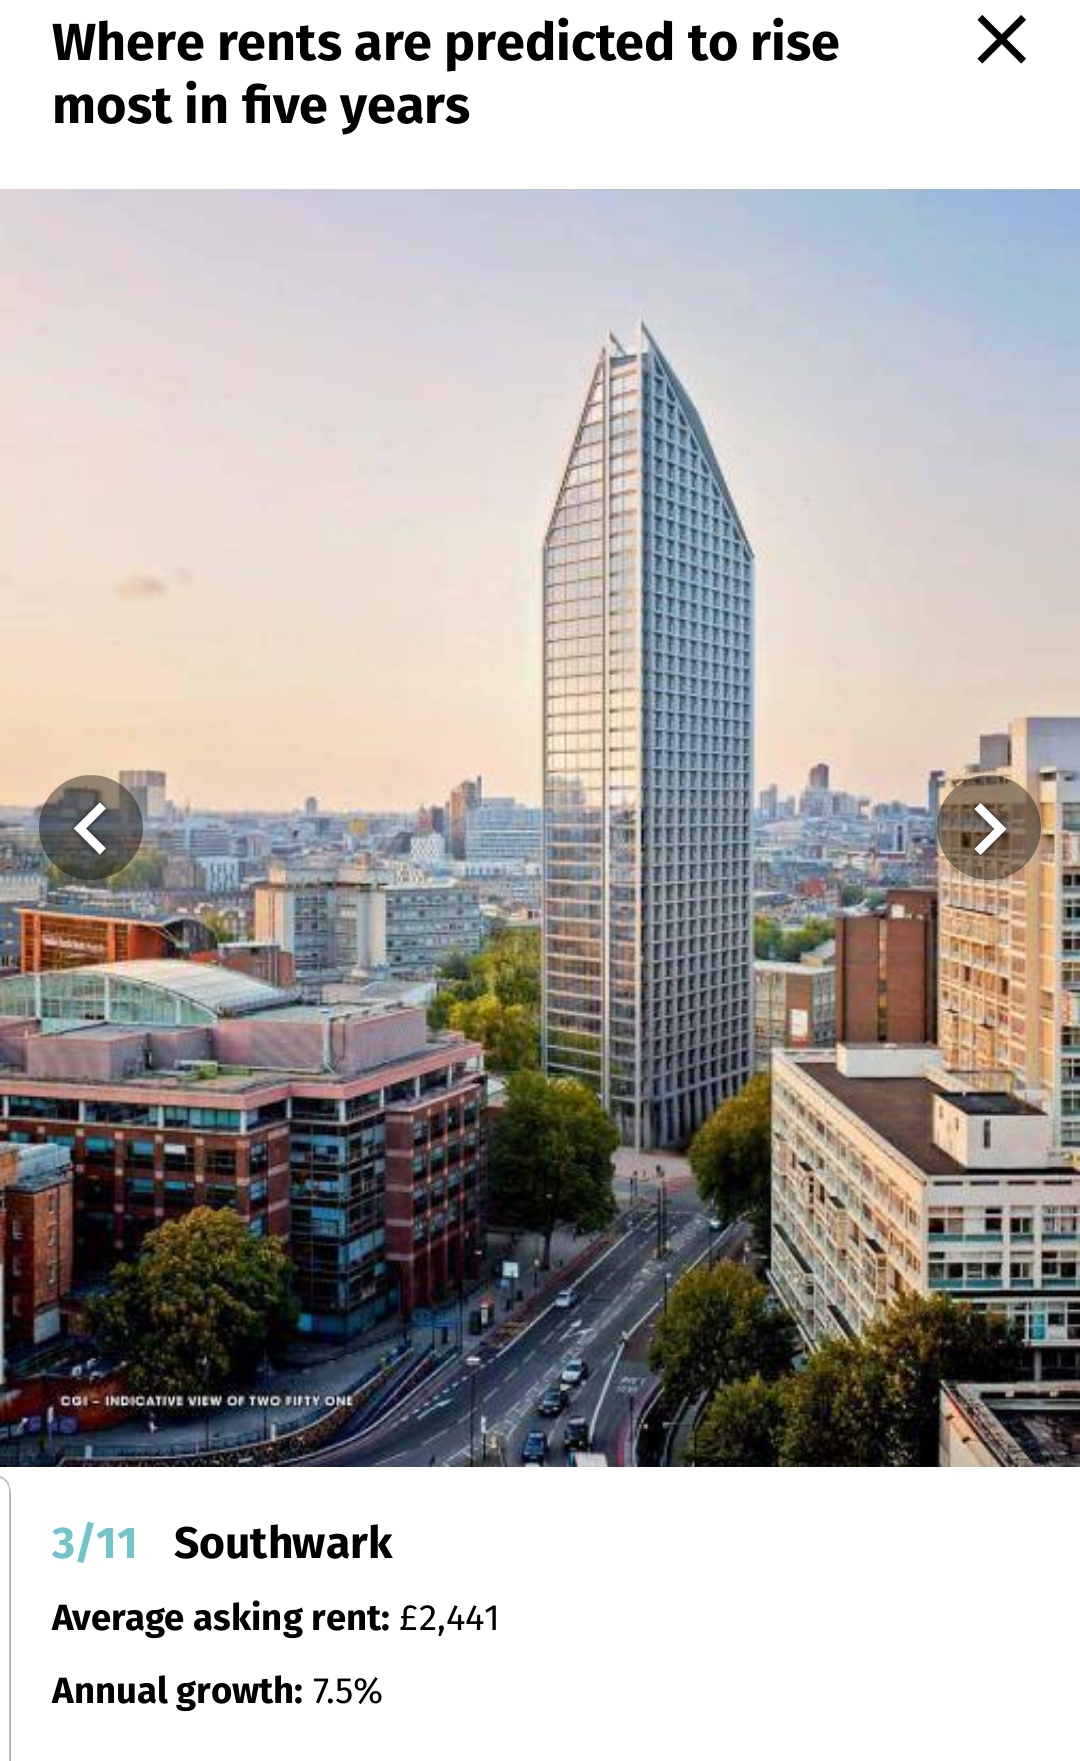 2019 Renting in London forecast: 2 key reasons why Brexit